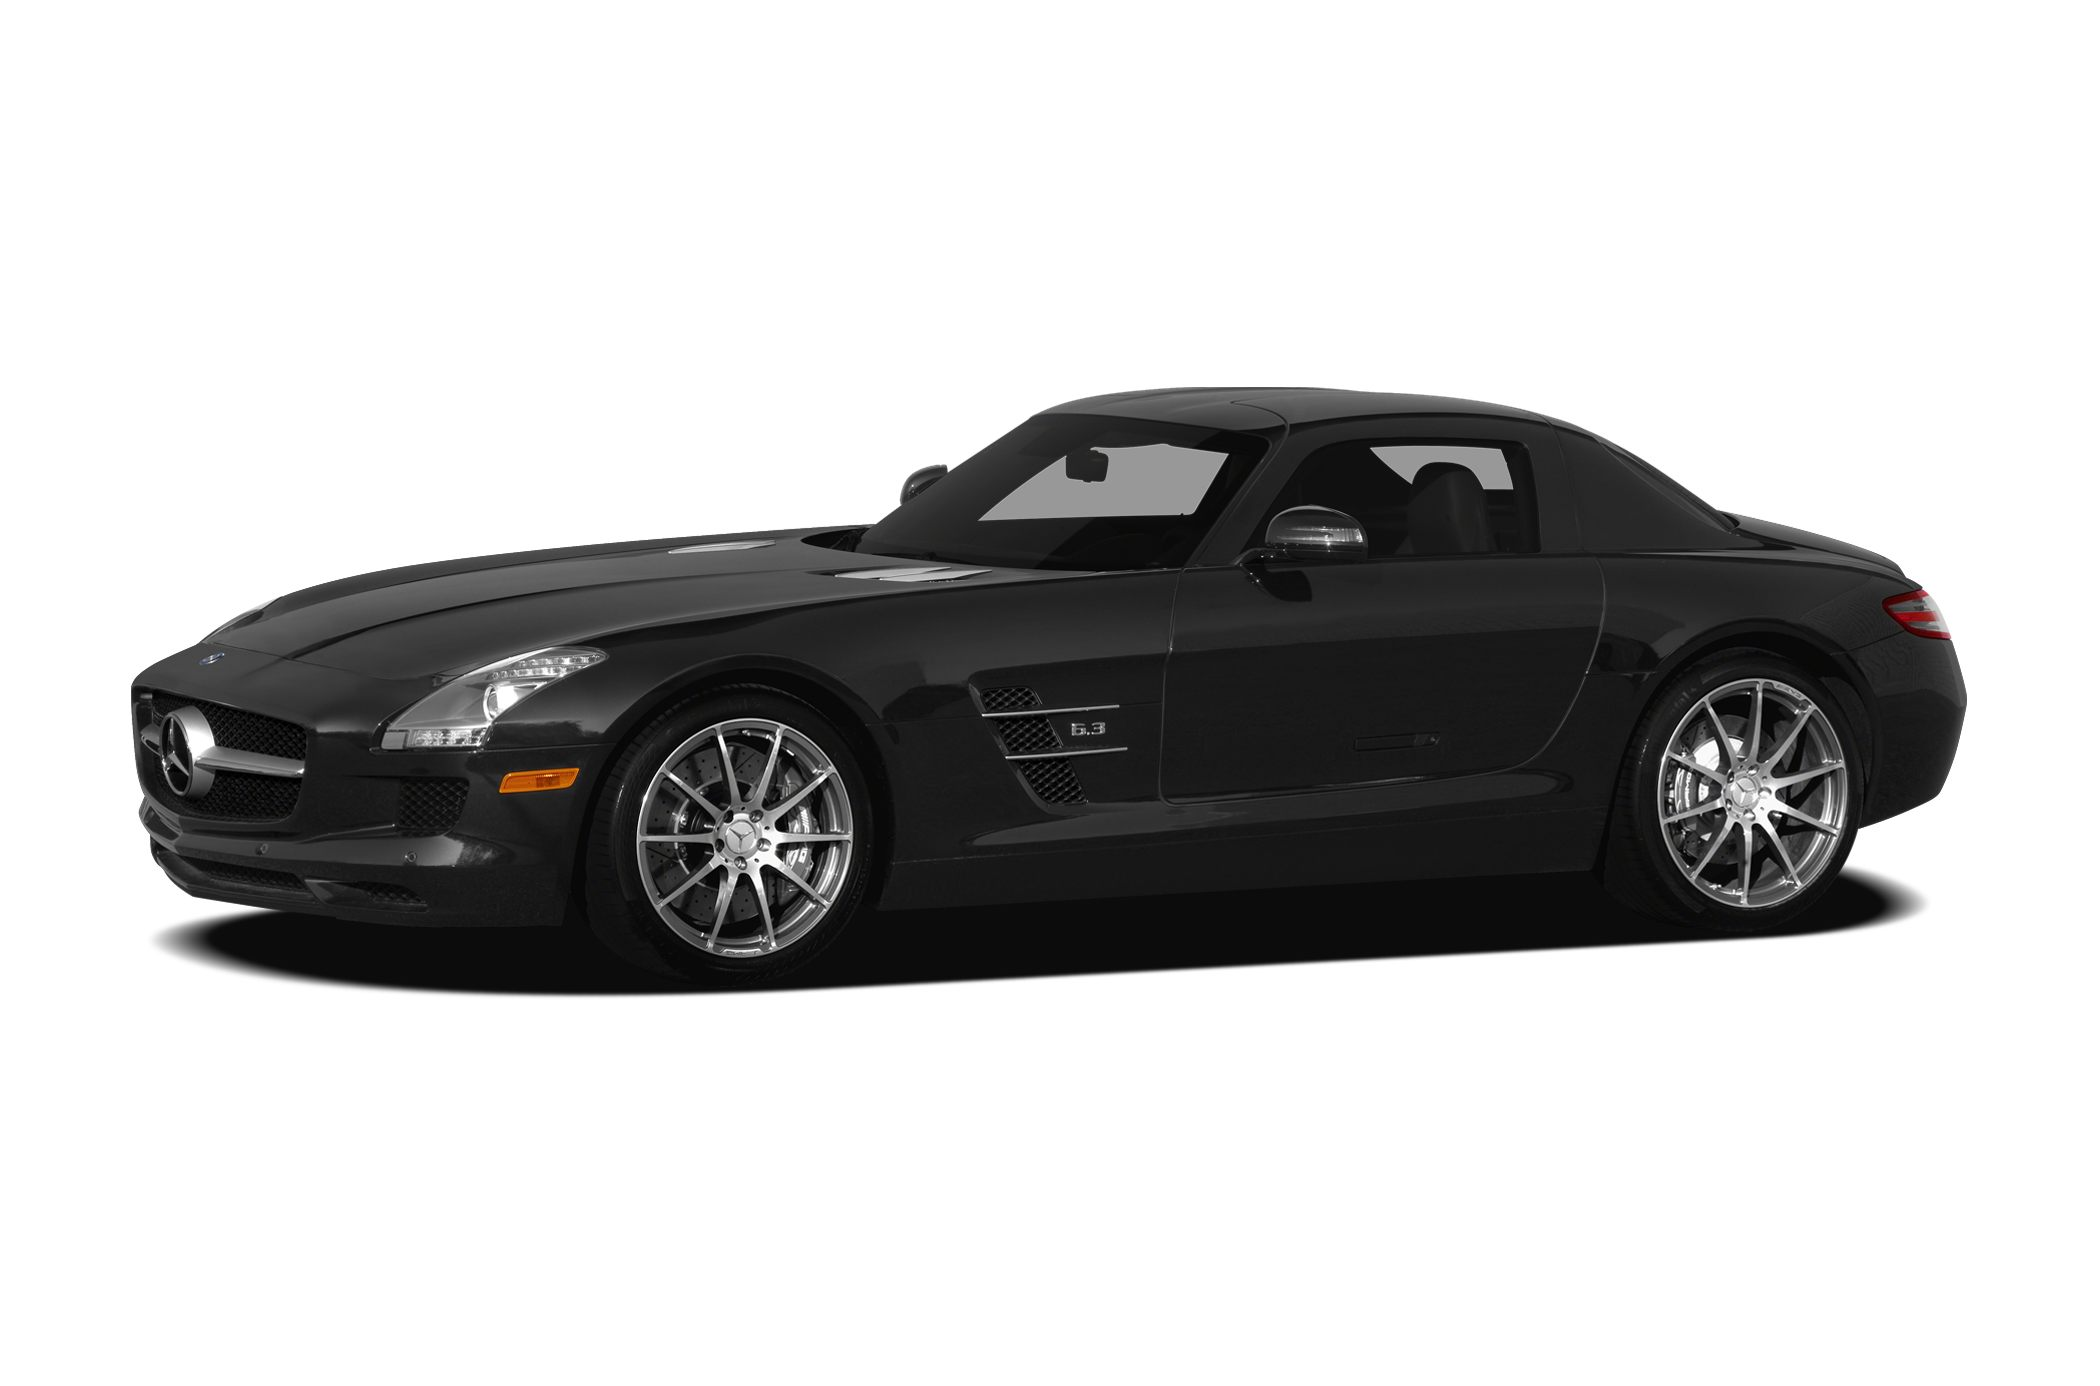 2012 Mercedes Benz SLS AMG Specs and Prices